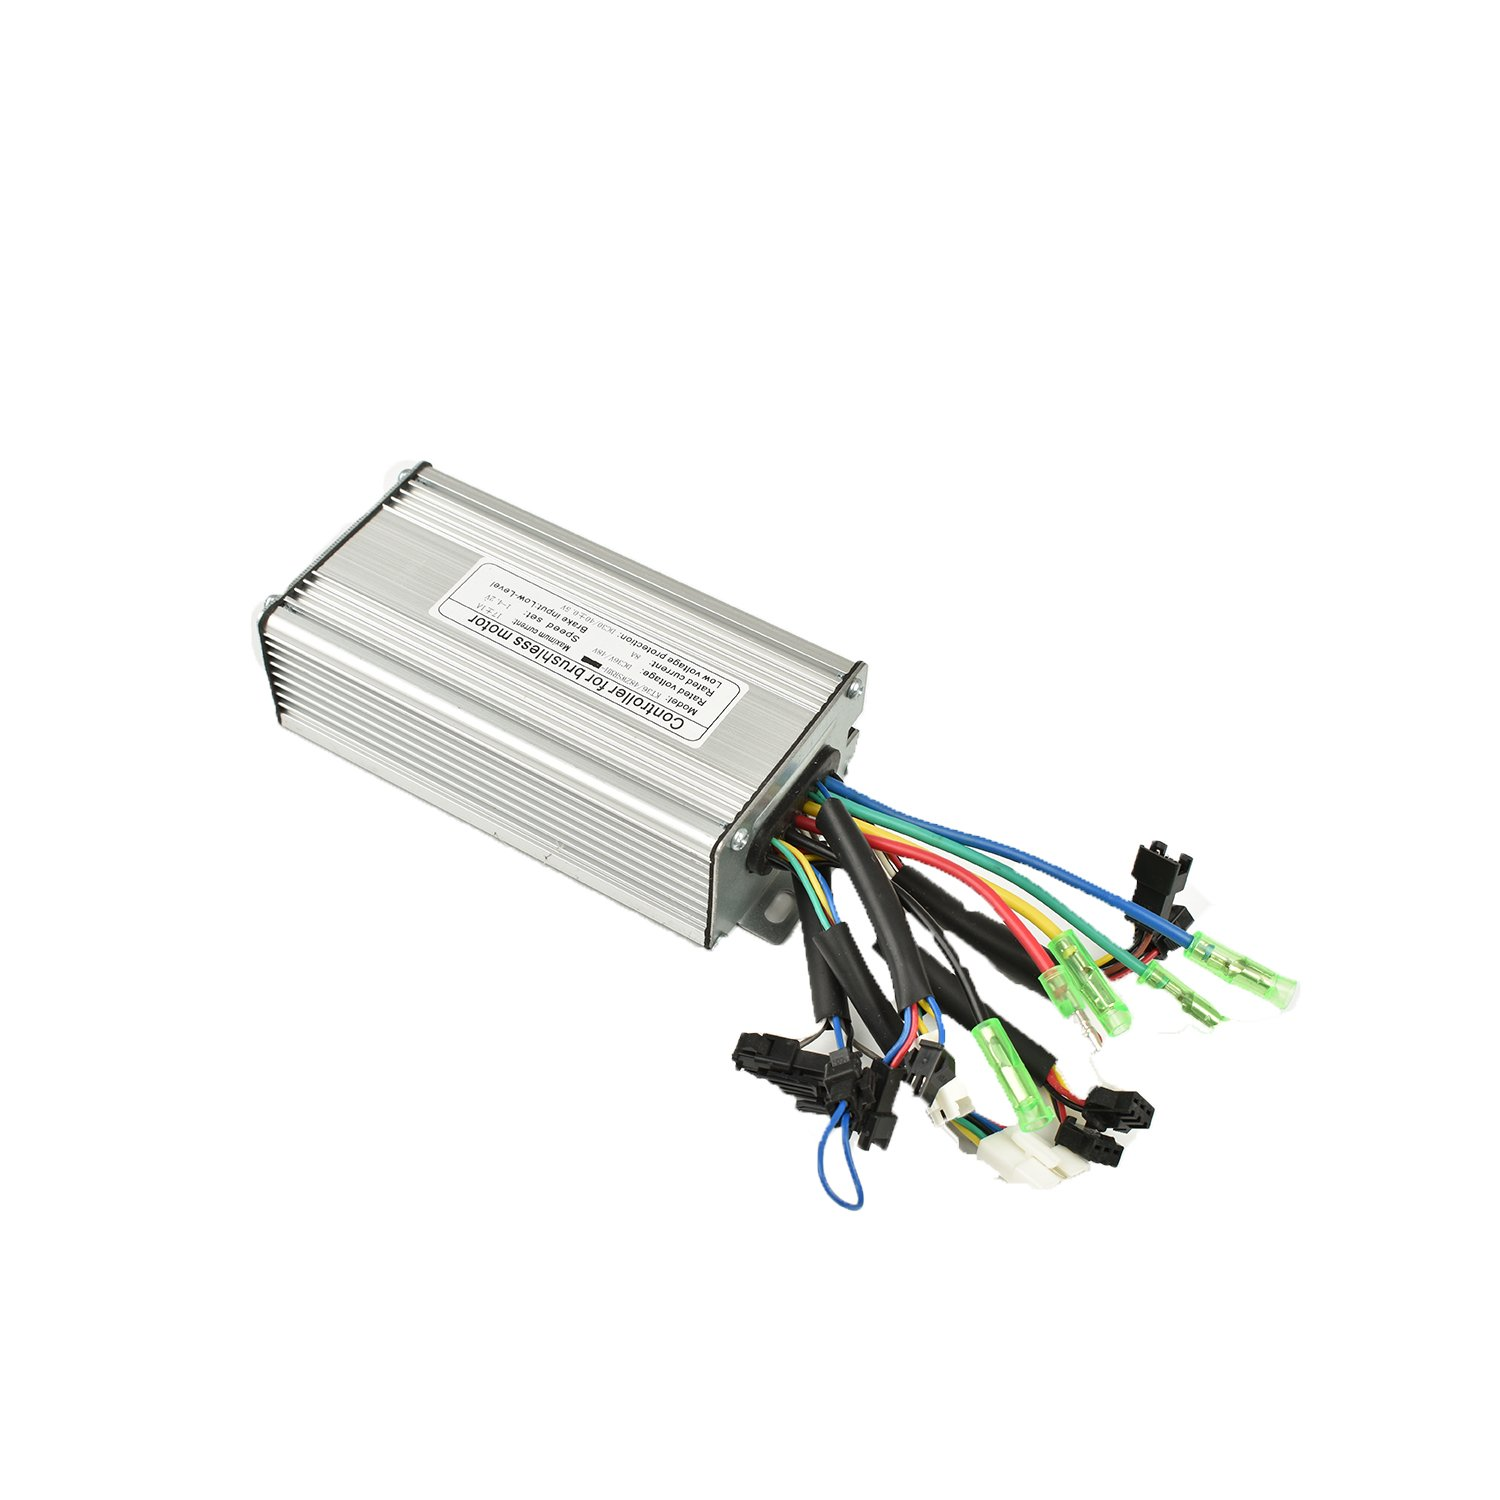 Pswpower 48v 36v 350w 9mosfets 17a Brushless Dc Torque Motors Wiring In Parallel Simulation Square Wave Controller Sports Outdoors